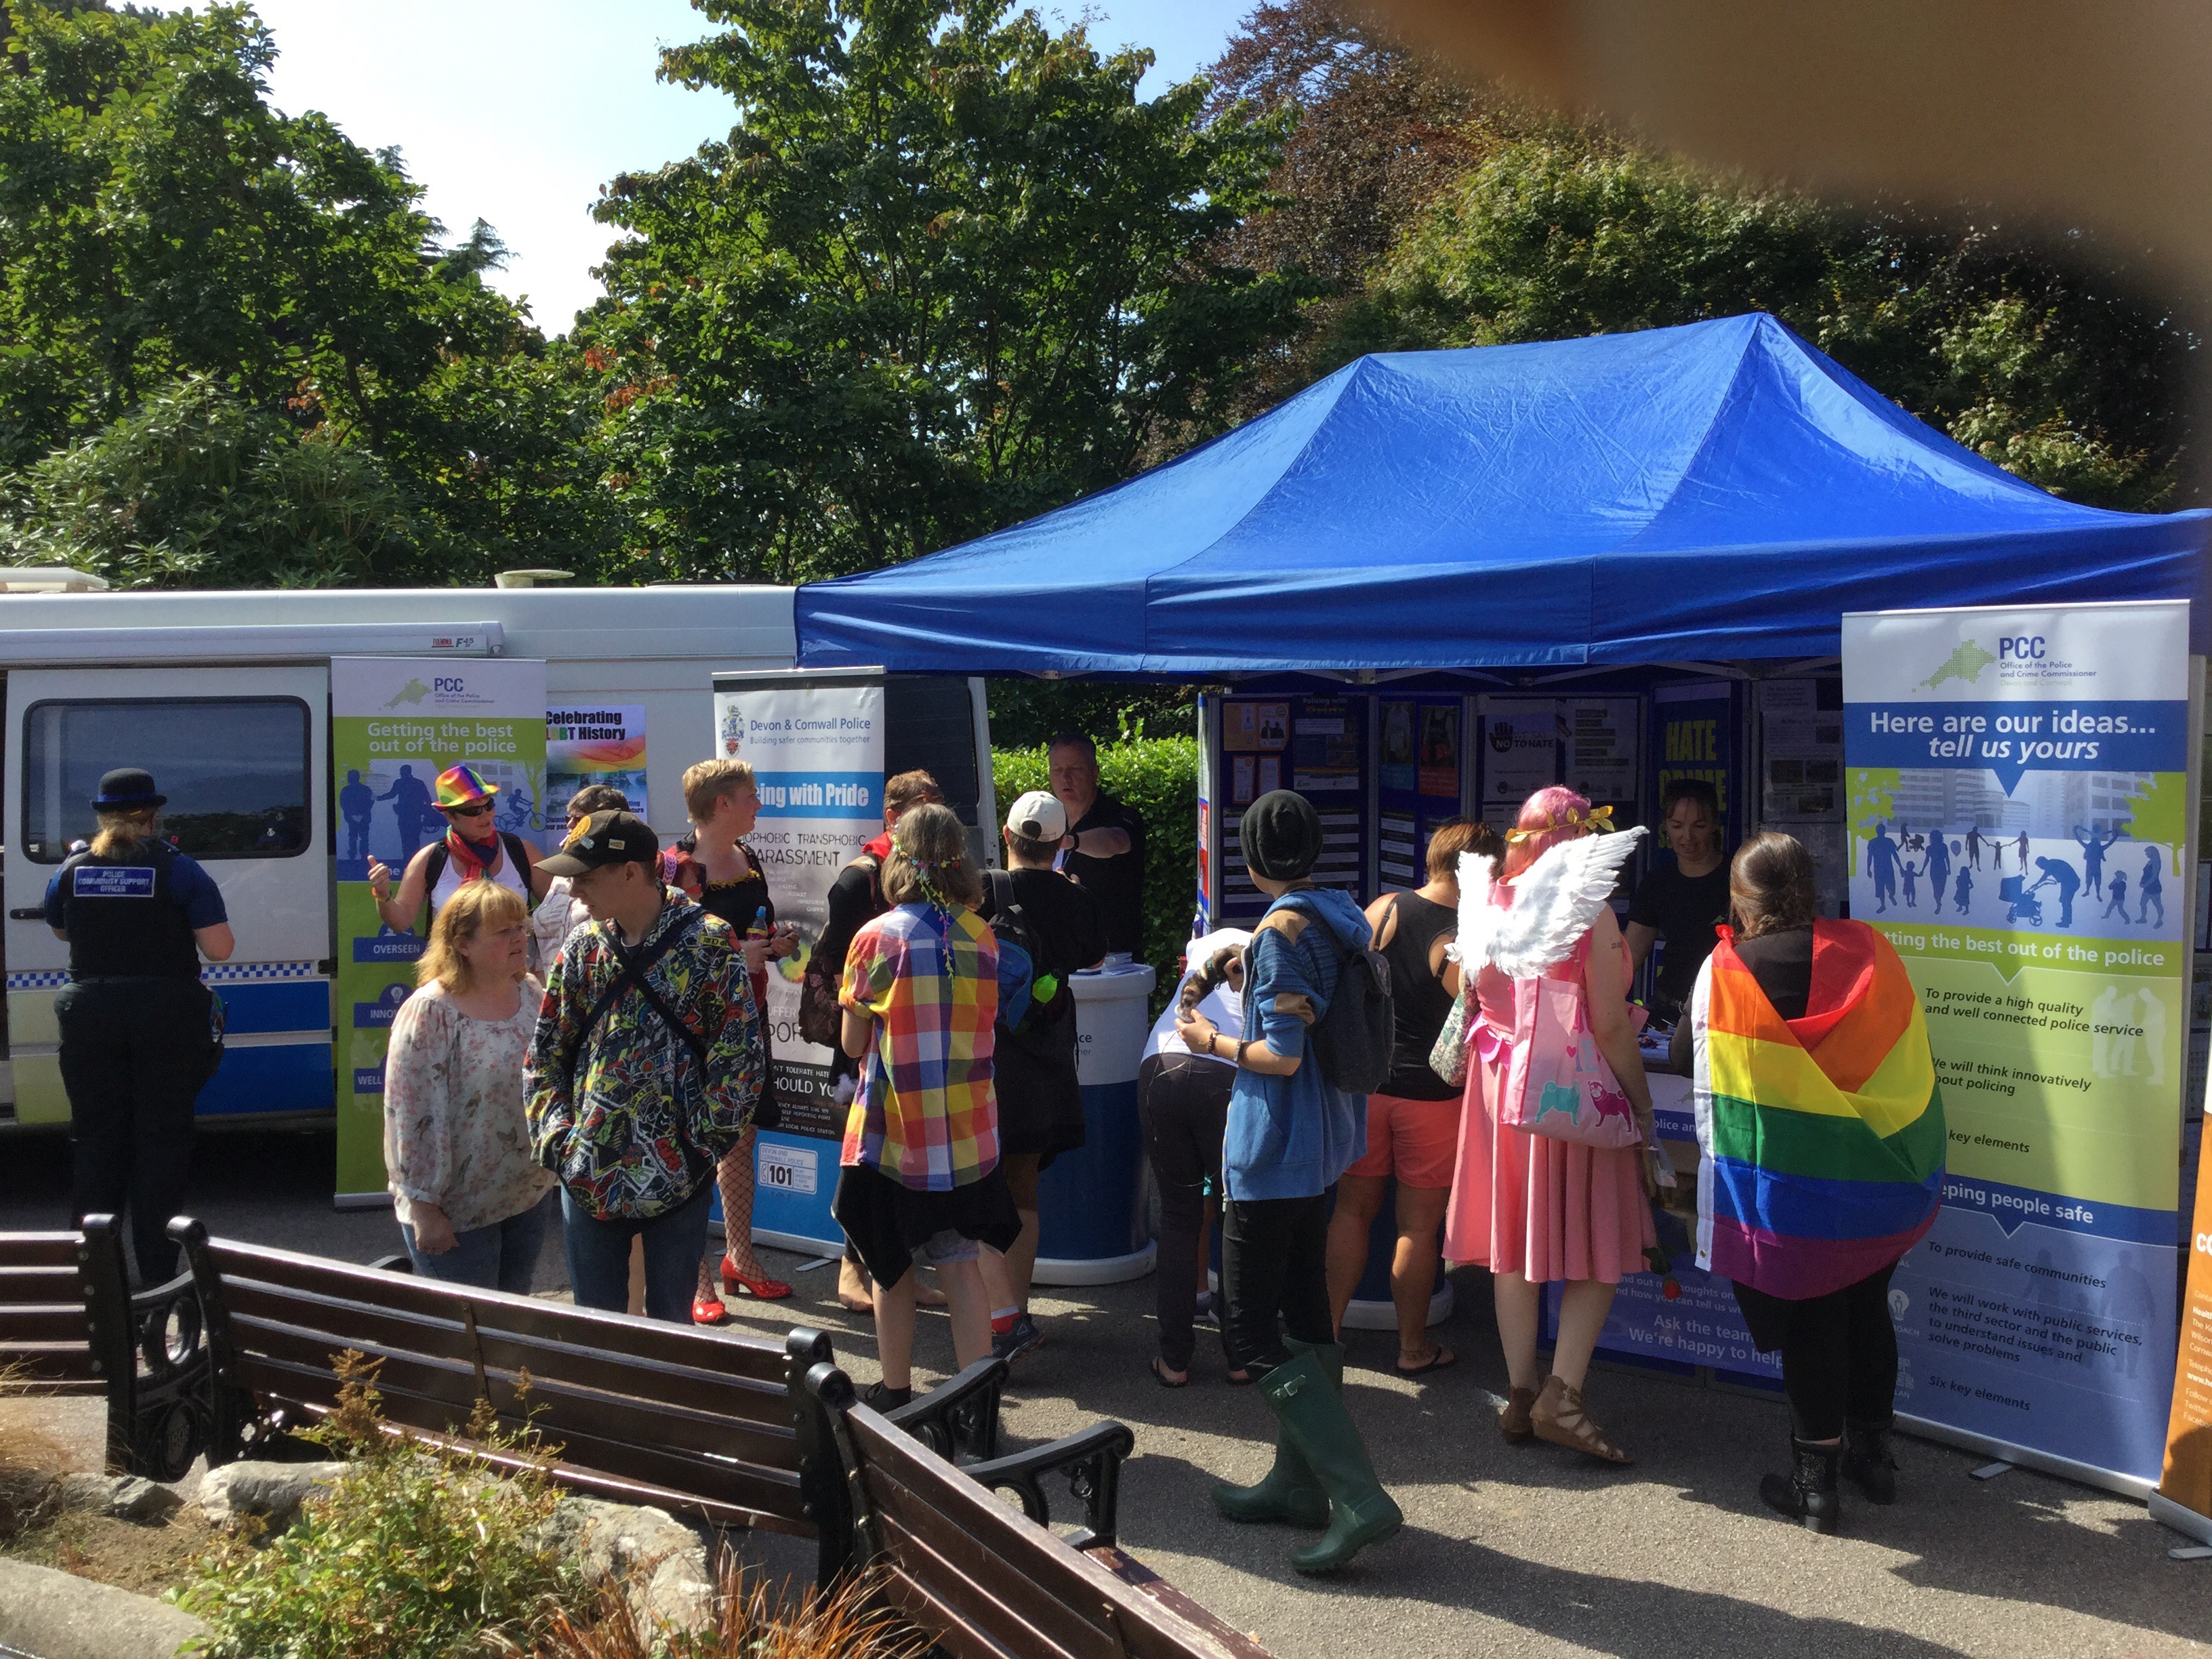 Exeter Pride - Community Event